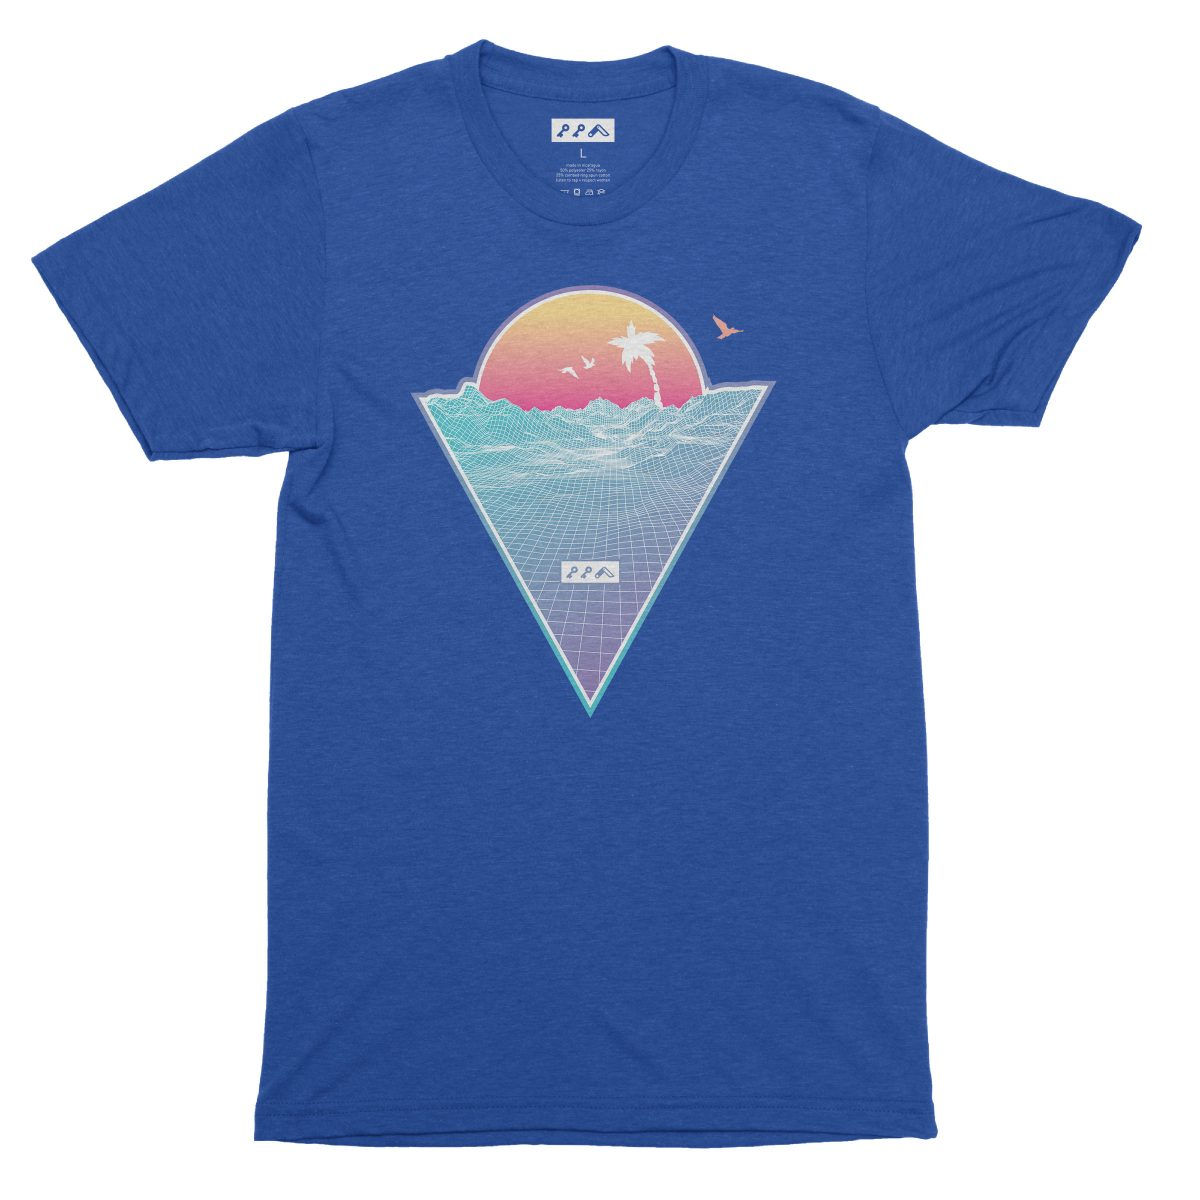 """OFF THE GRID"" cali vibes retro 80s design t-shirts dodger blue tri-blend by kikicutt"